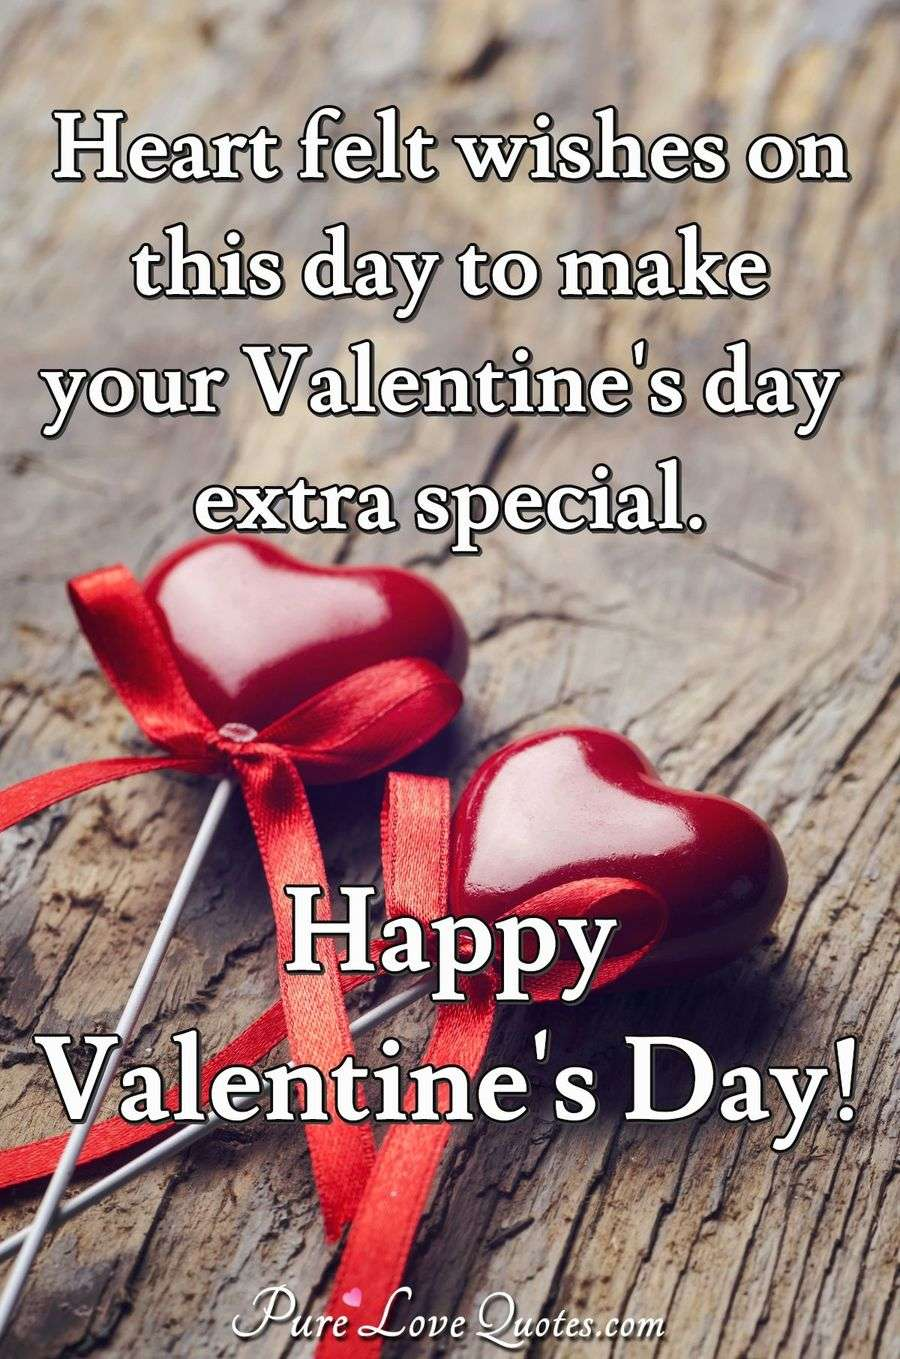 True Love Valentine Quotes: Heart Felt Wishes On This Day To Make Your Valentine's Day